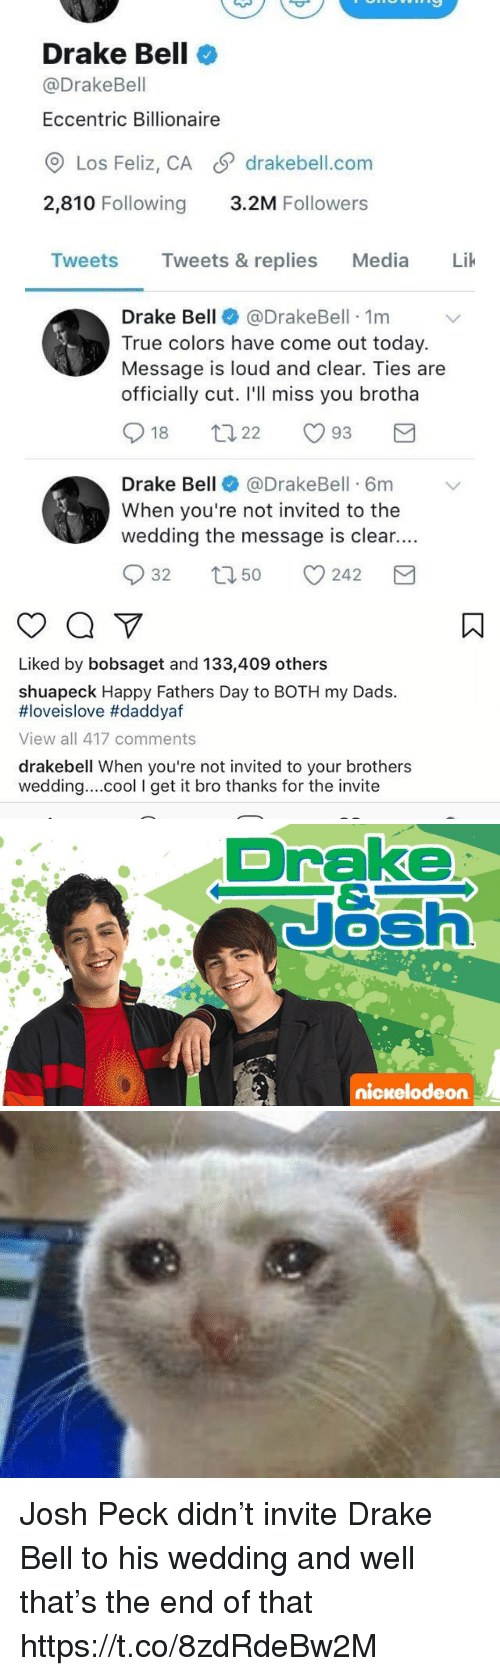 Drake, Drake Bell, and Fathers Day: Drake Bell  @Drake Bell  Eccentric Billionaire  CO Los Feliz, CA SP drakebell.com  2,810 Following  3.2M Followers  Tweets  Tweets & replies  Media  Lik  Drake Bell  @Drake Bell 1m  True colors have come out today.  Message is loud and clear. Ties are  officially cut. I'll miss you brotha  S t 22  18  93  Drake Bell  @DrakeBell 6m v  When you're not invited to the  wedding the message is clear....  S 32 t 50 242  M   Liked by bobsaget and 133,409 others  shuapeck Happy Fathers Day to BOTH my Dads.  HIoveislove #daddyaf  View all 417 comments  drakebell When you're not invited to your brothers  wedding....cool I get it bro thanks for the invite   Drake  Nash  nickelodeon Josh Peck didn't invite Drake Bell to his wedding and well that's the end of that https://t.co/8zdRdeBw2M